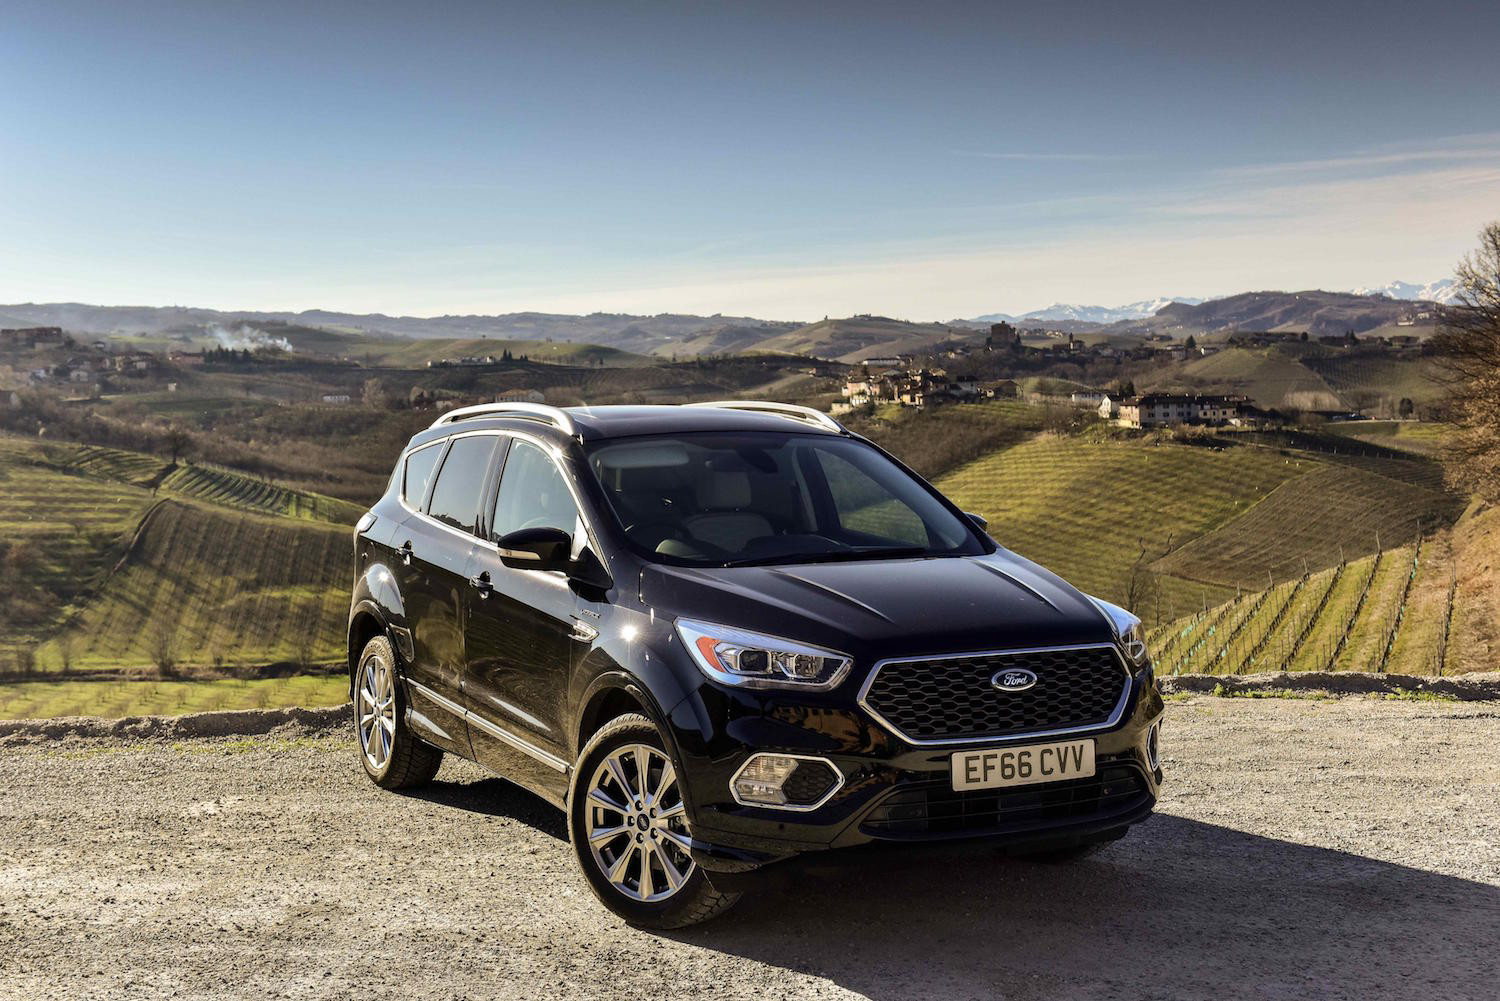 Black Ford Kuga parked facing three-quarters overlooking countryside.